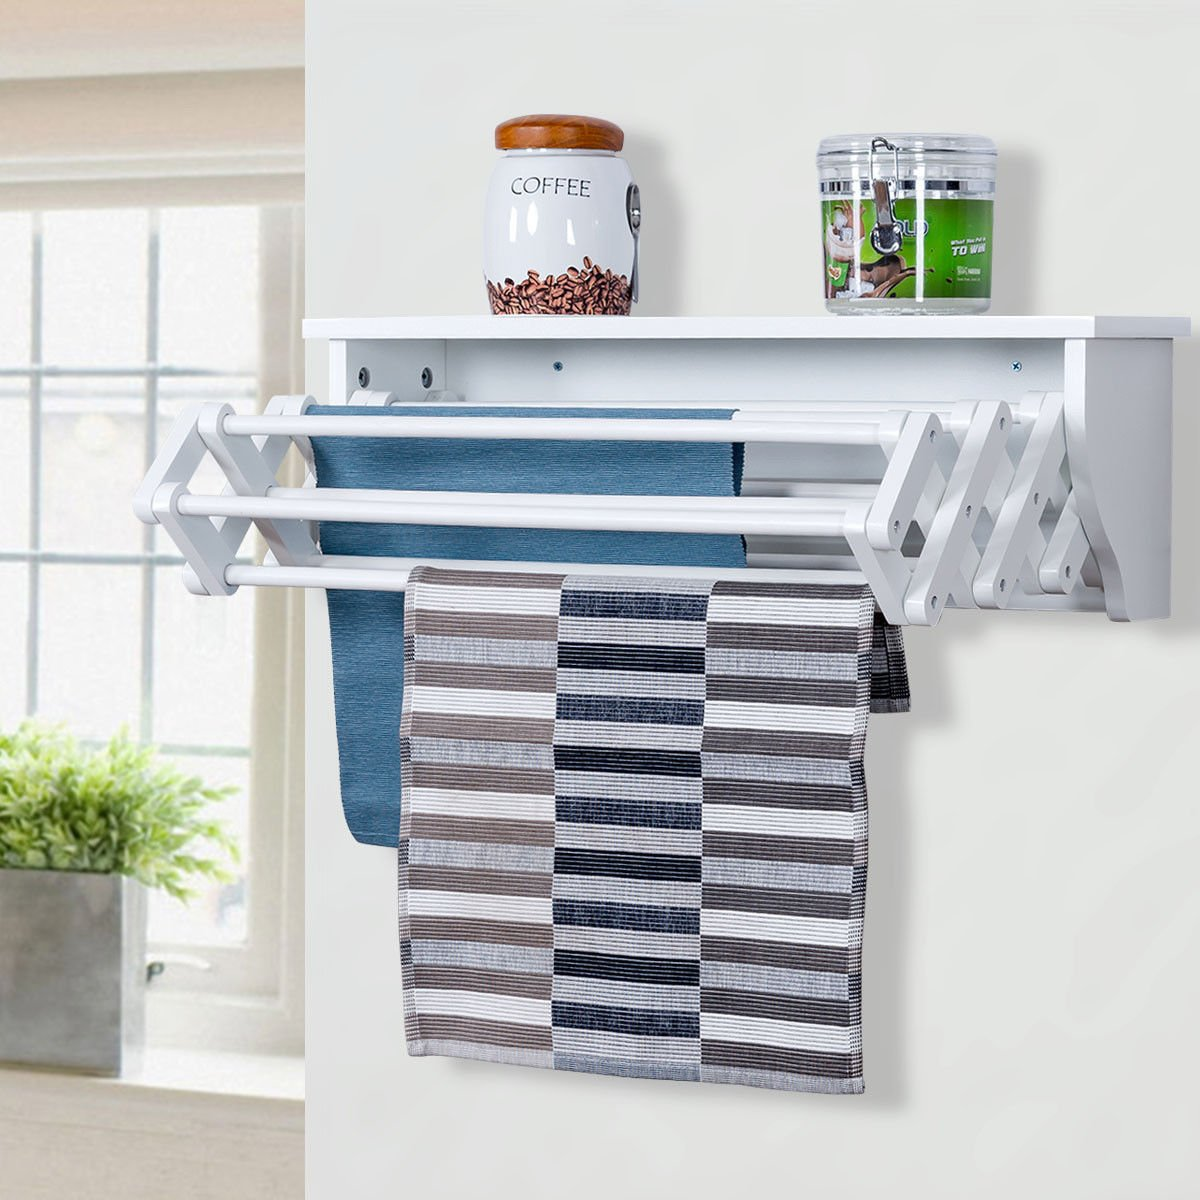 Amazon.com: TANGKULA Wall Mount Drying Rack Bathroom Home Expandable ...